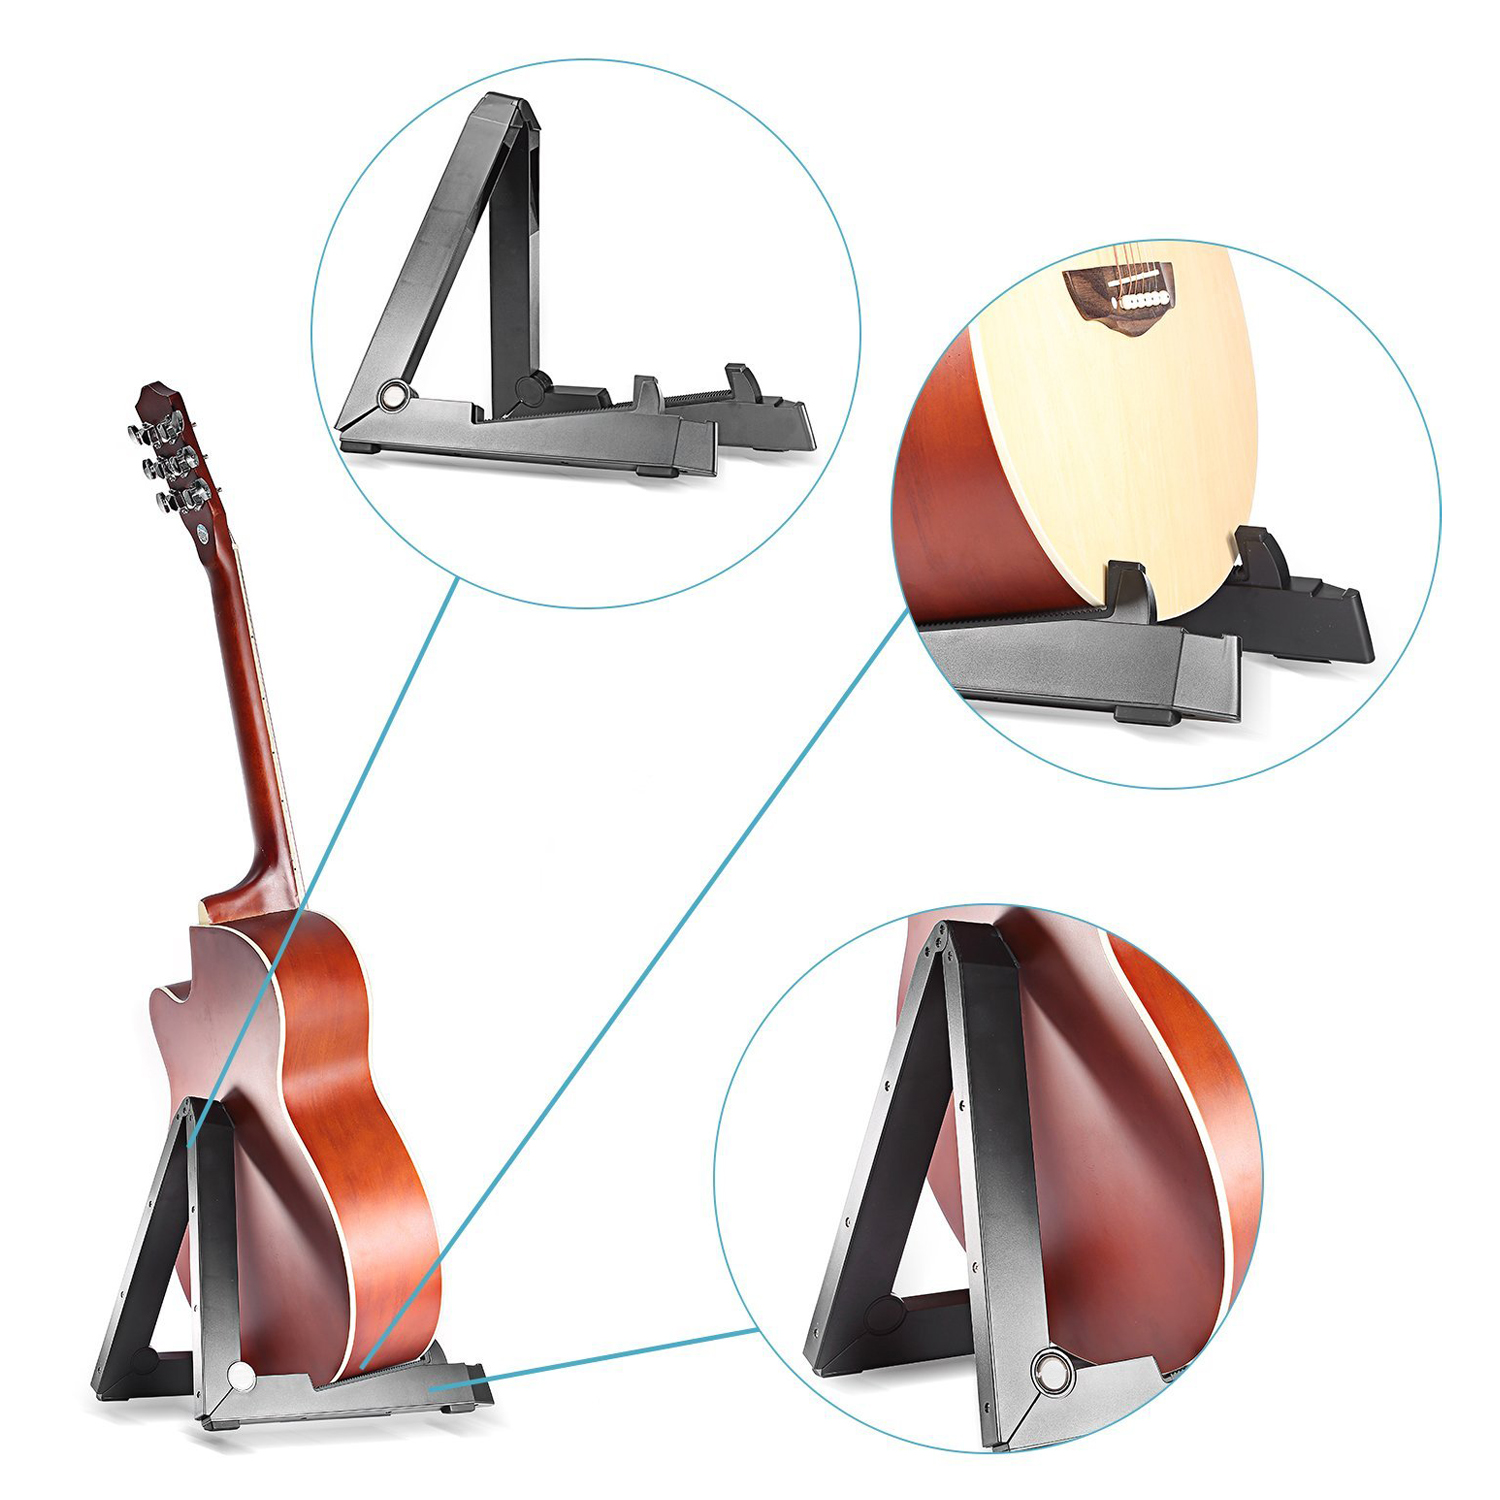 2 PCS of (Foldable Folding Lightweight Portable Guitar A-frame Stand for Acoustic Guitar,Classical,Electronic,Violin,Ukulele) 8pcs meideal capo10 clamp for ukulele and classical guitar